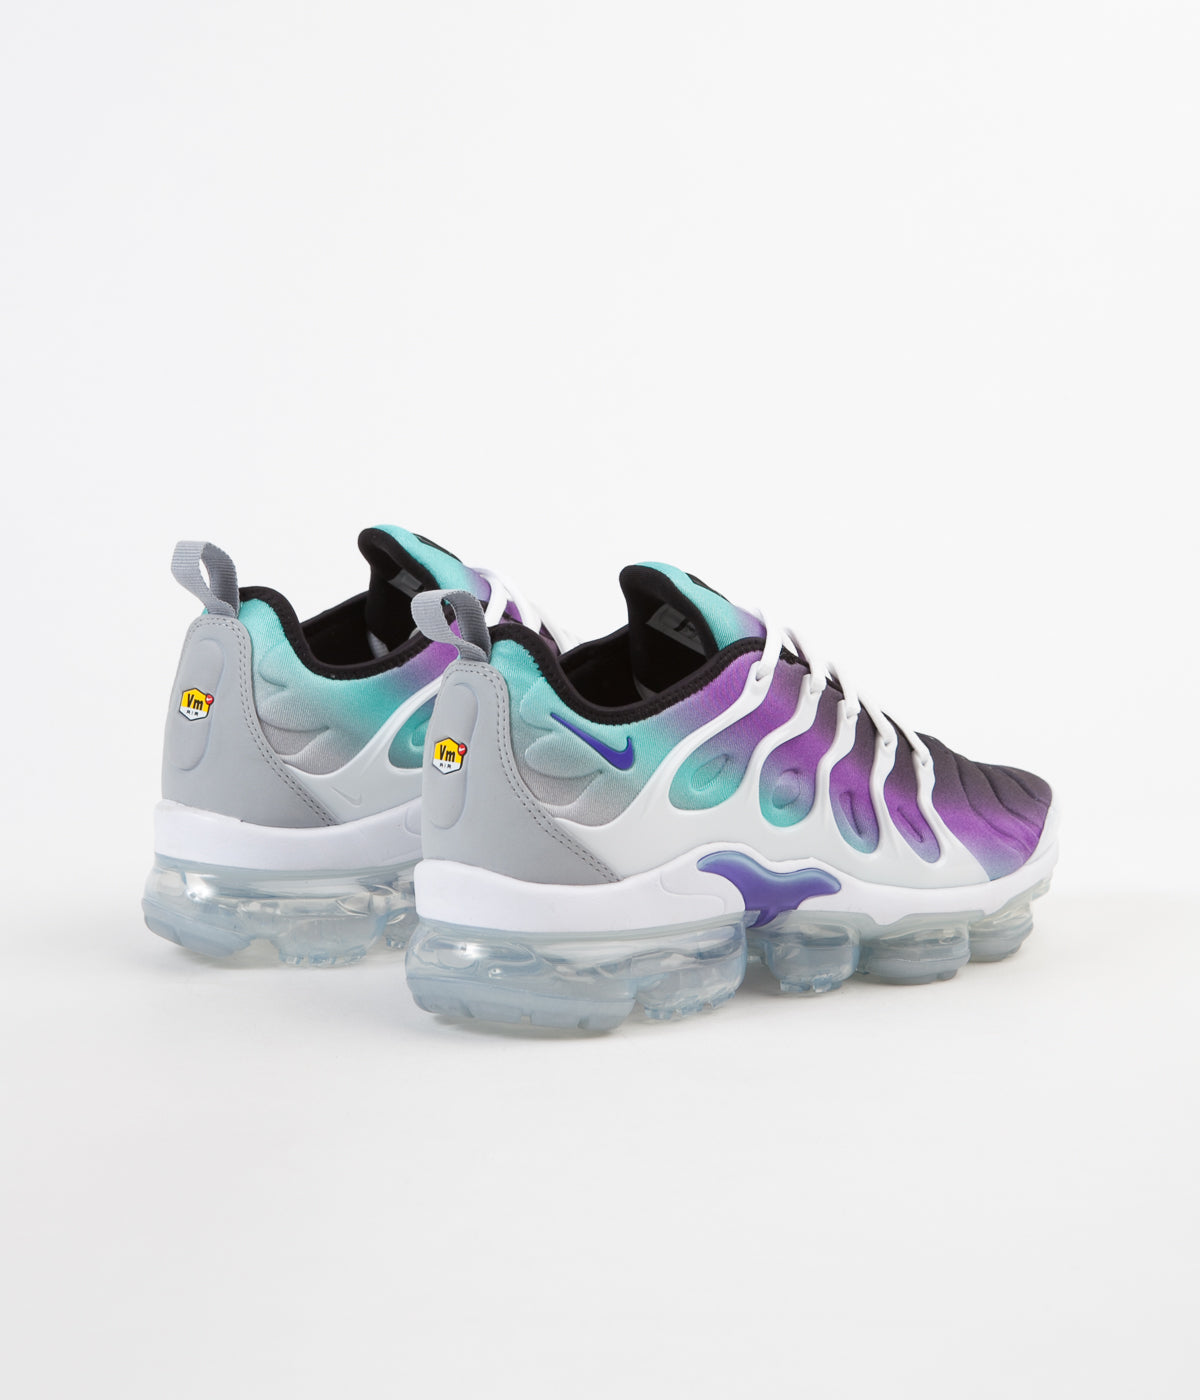 timeless design c8252 59e04 Nike Air VaporMax Plus Shoes - White / Fierce Purple - Aurora Green - Black